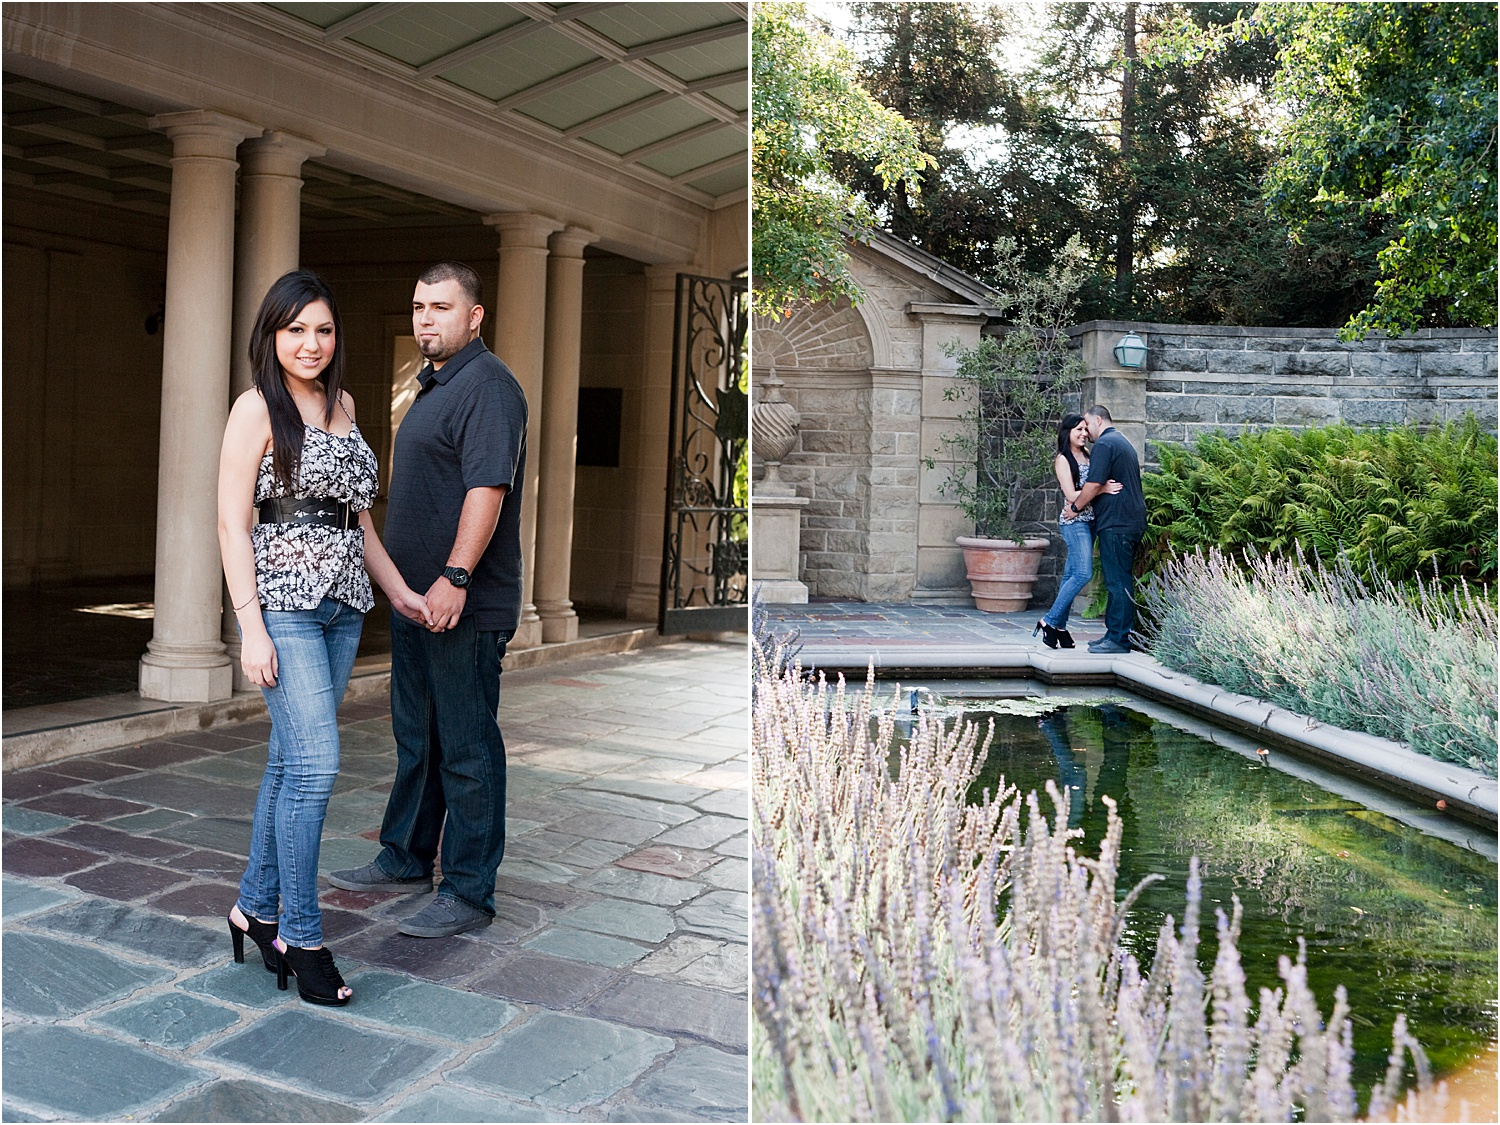 18 - Guide to the Best Poses for Engagement Photos